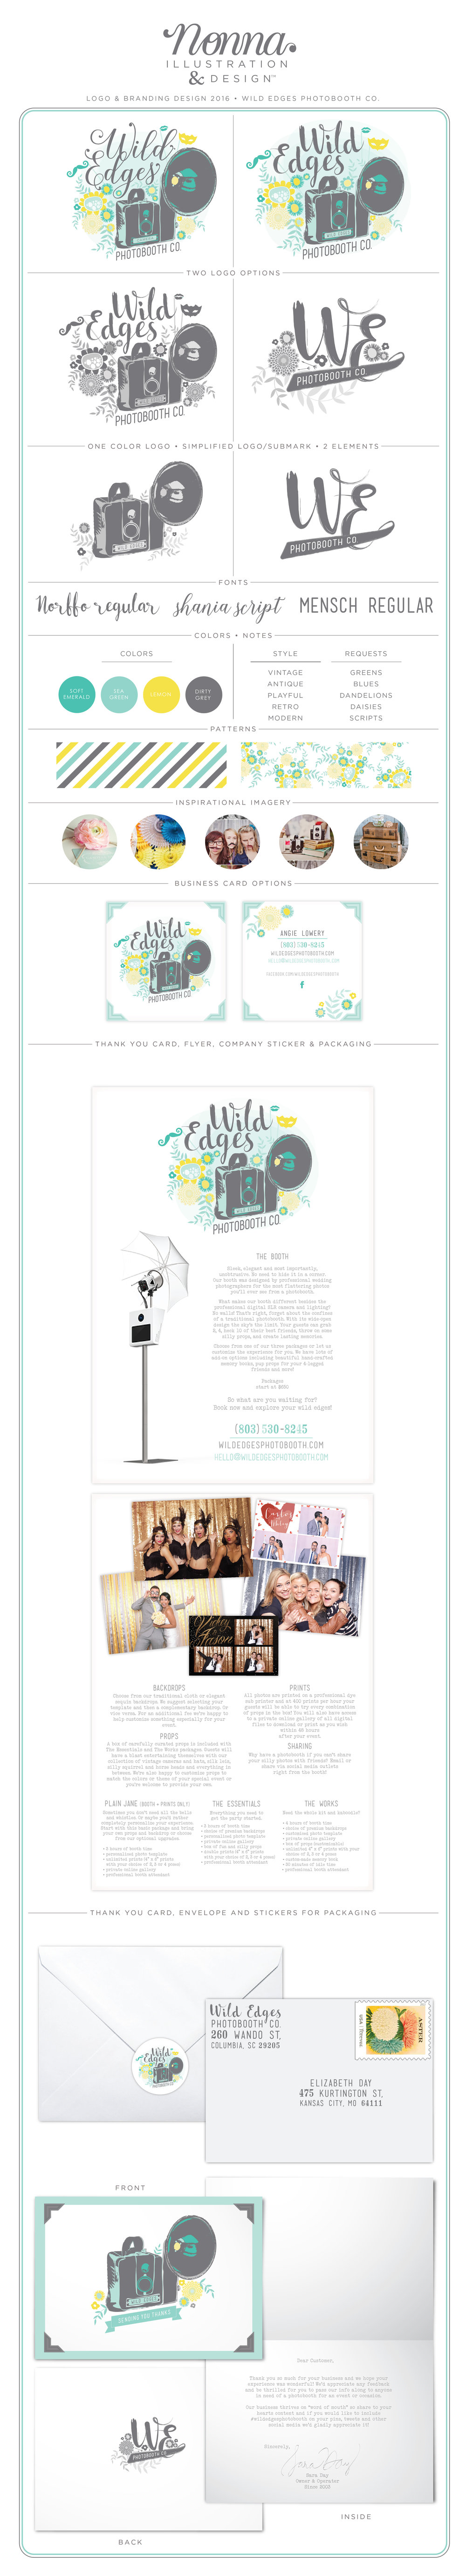 I cannot tell you how much fun I had doing this Branding / Identity for Wild Edges Photobooth Co. Angie, the owner, has such fun ideas in her mind and I was so thrilled to bring it to life! I was able to use my illustration of my Grandfather's old camera and incorporate some adorable flowers into the mix in her favorite colors. Adding the photo props into the logo was a great touch Angie thought of and was so thrilled I Was able to get each request just as she was thinking and hoping for.  Stop by and see the website I did for her as well, it's so fun to see all her sample pictures from events. It really gives you ideas on what kind of parties and events she can do.   Wild Edges Photobooth Co.  -  http://www.wildedgesphotobooth.com/